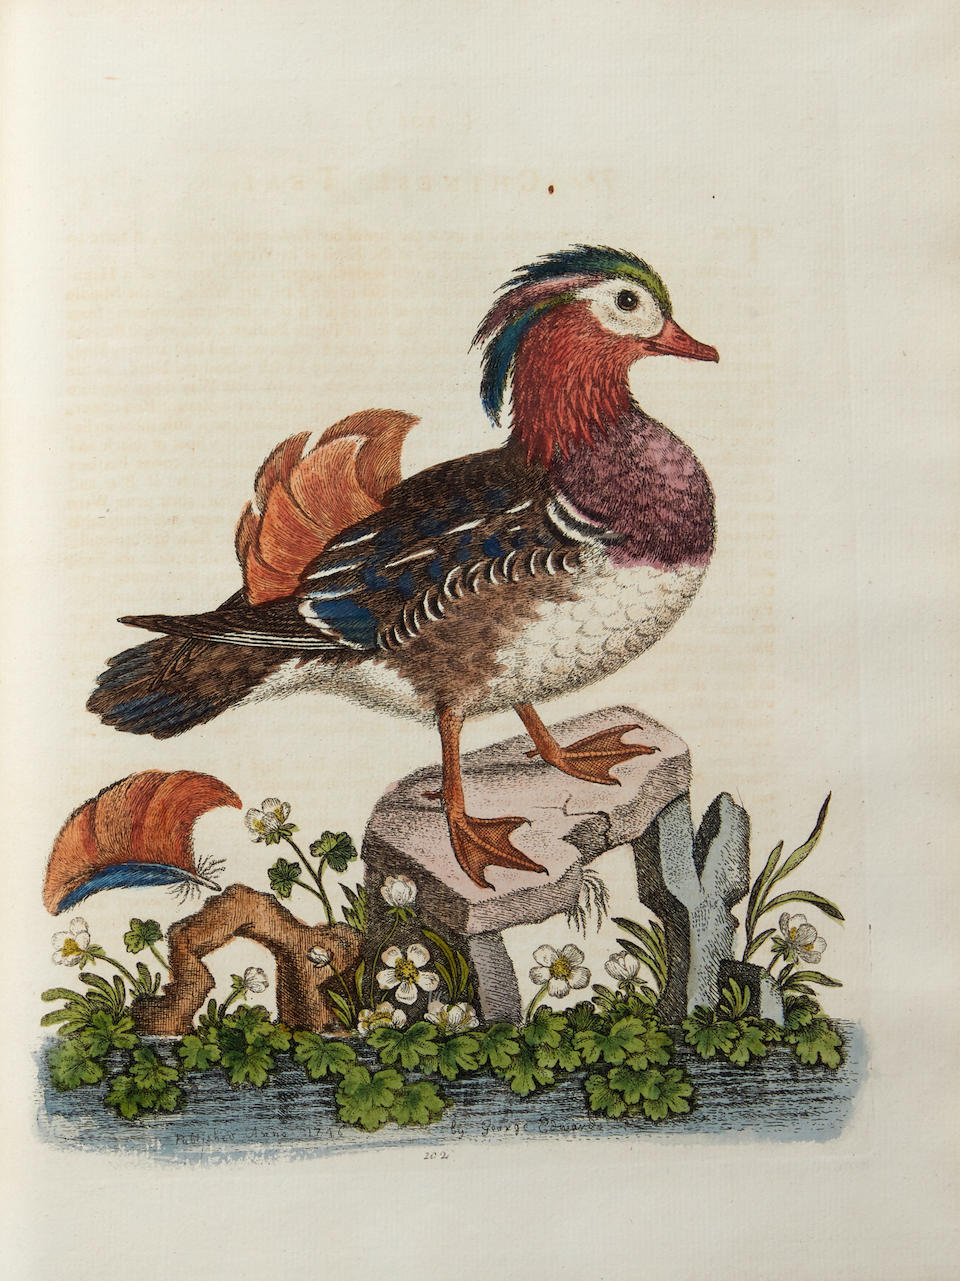 EDWARDS, GEORGE. 1694-1773. Natural History of Uncommon Birds. London: for the Author, [1739]-1751.